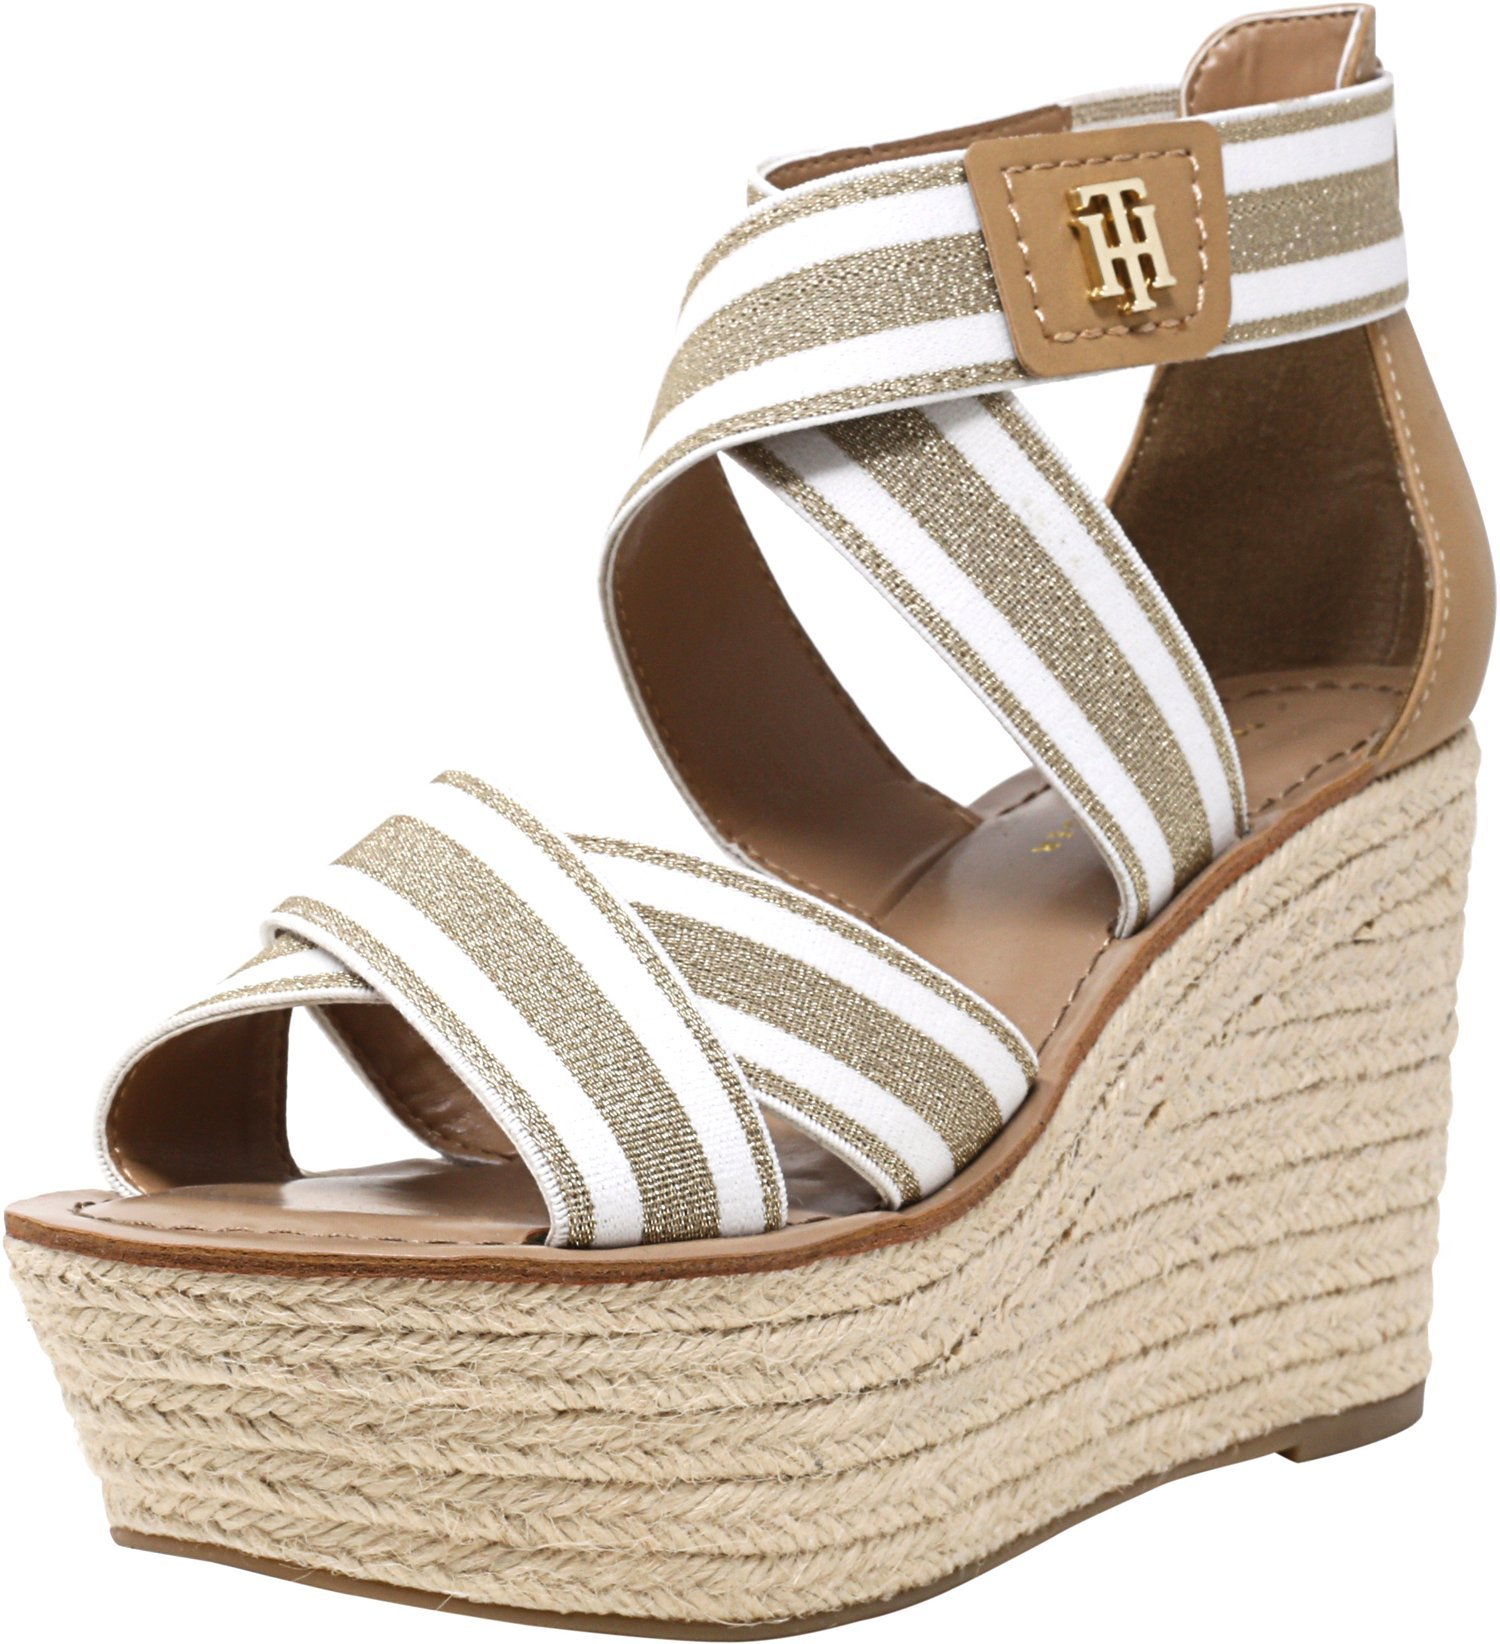 febd86b1 Galleon - Tommy Hilfiger Women's Theia Espadrille Wedge Sandal, Gold/White,  8 Regular US